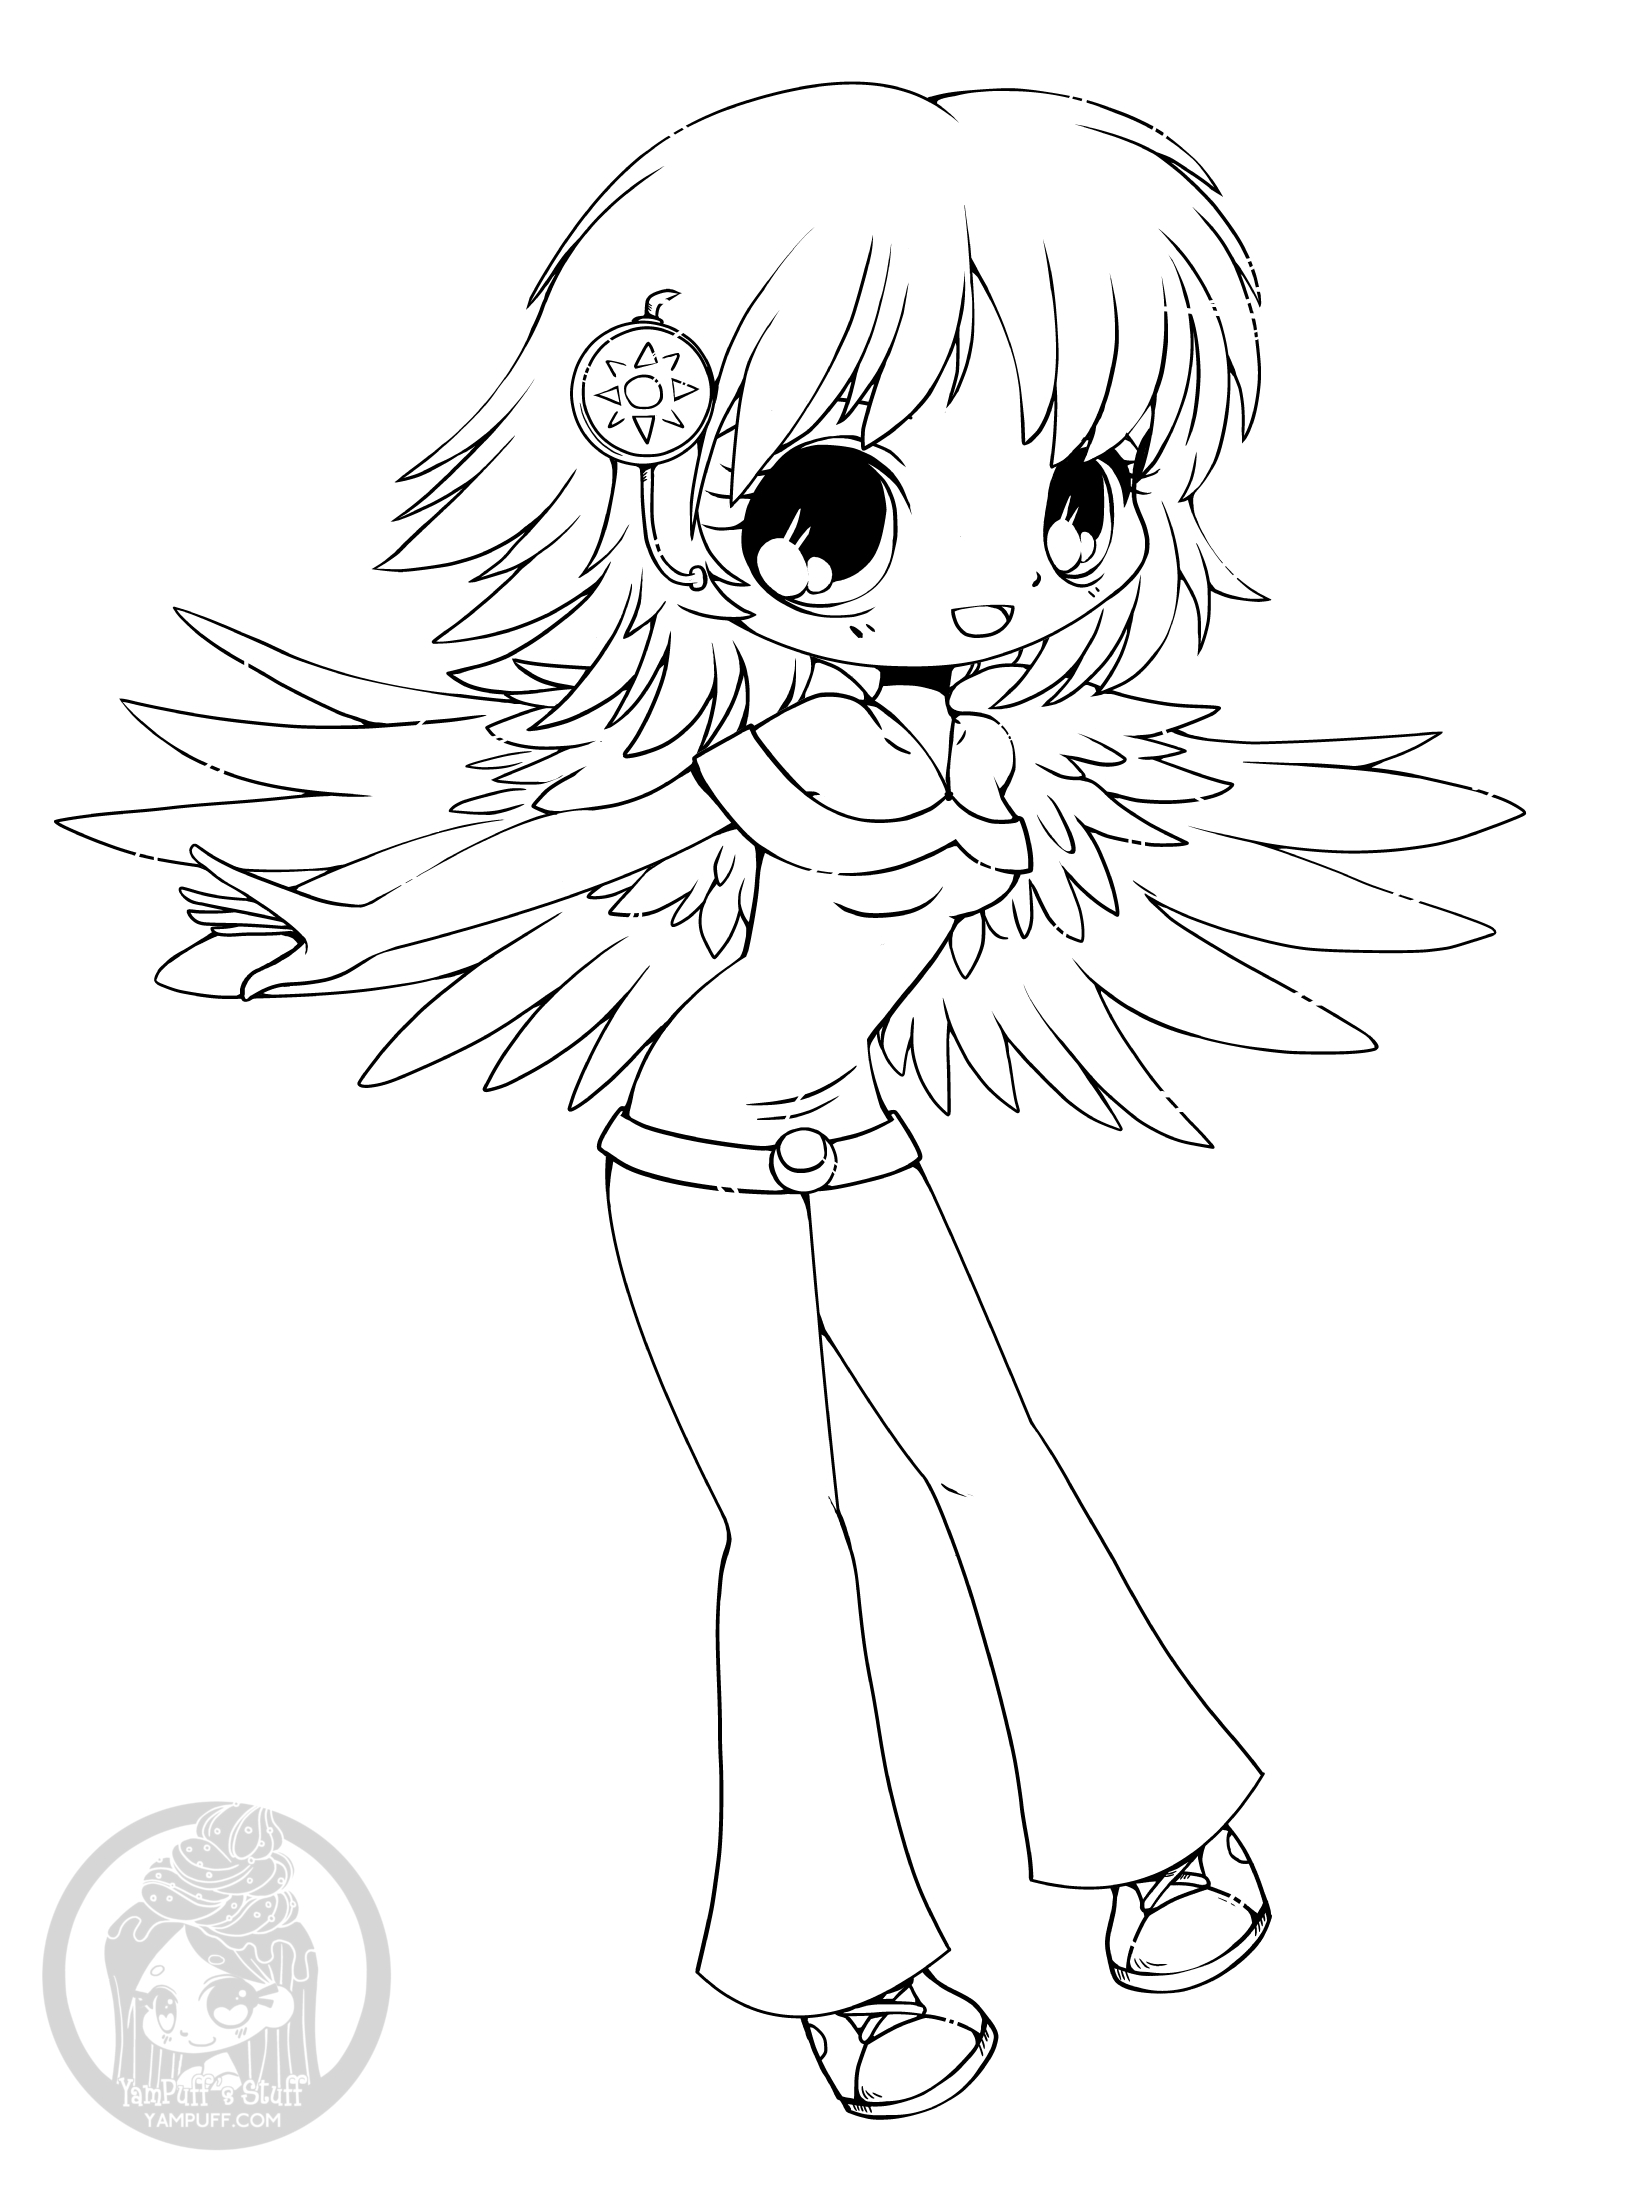 coloring pages anime chibi chibi messier 6 coloring page by pandanalove on deviantart chibi coloring anime pages